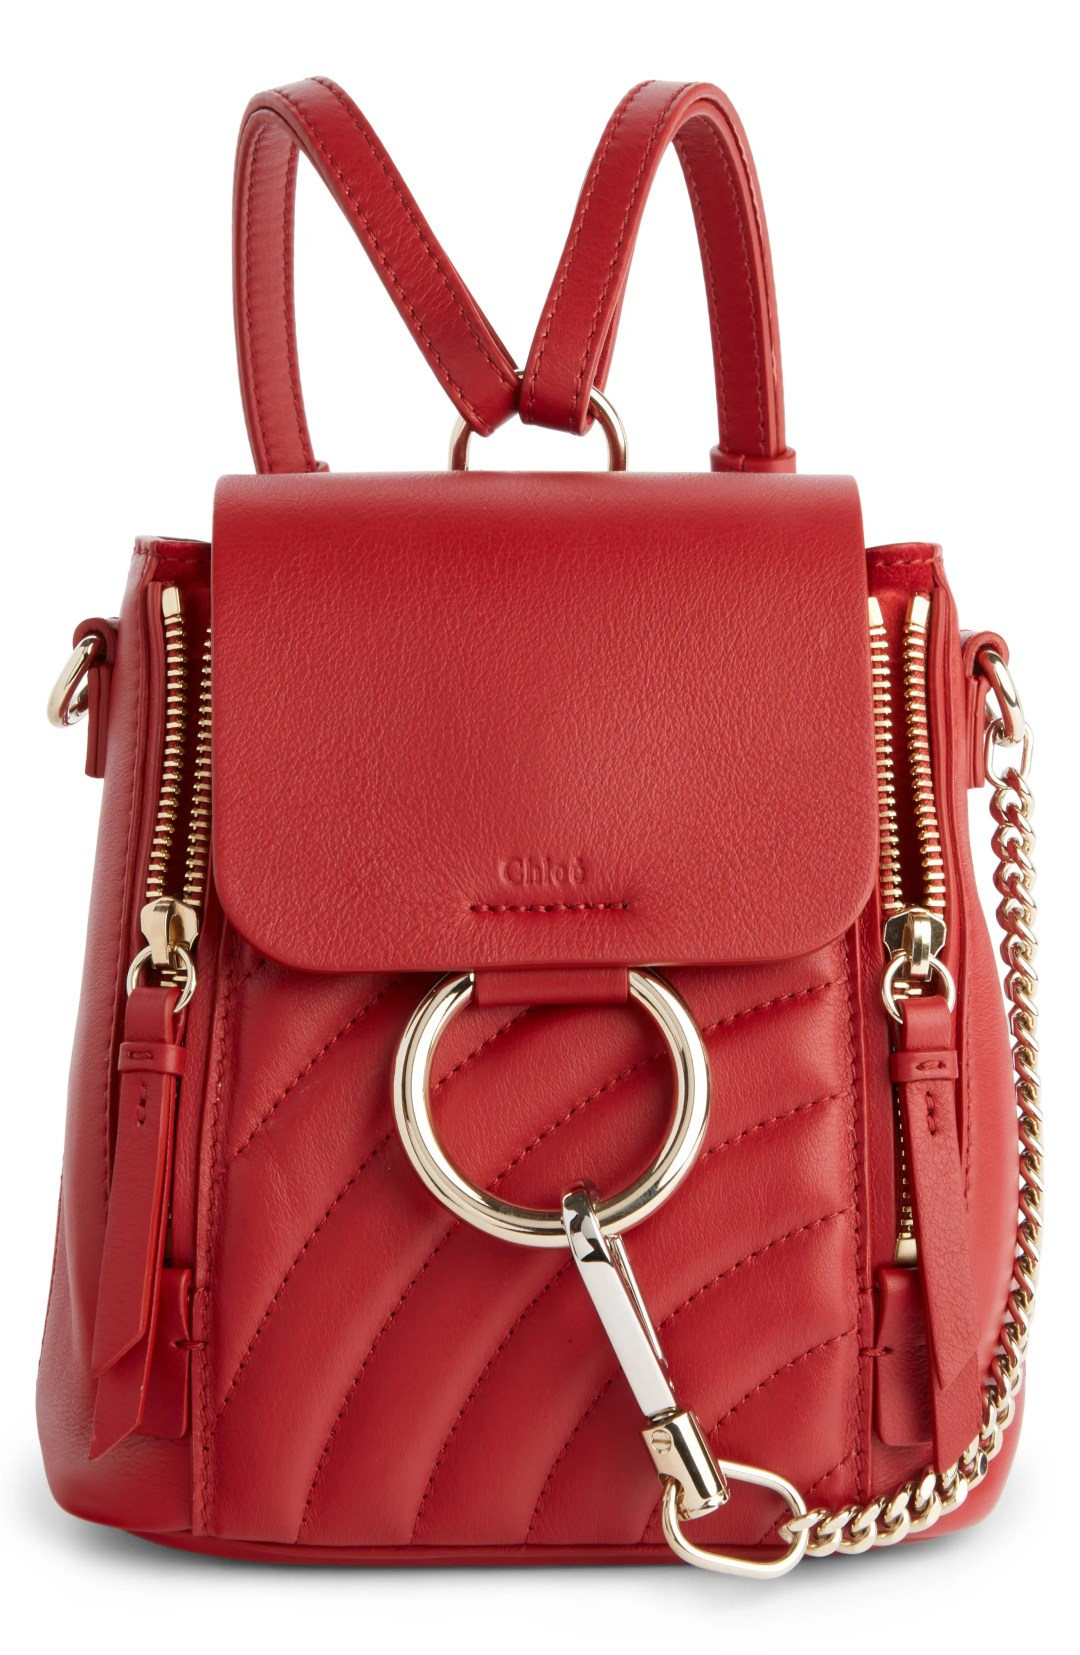 067cb557d6b Chloé Faye Quilted Leather Backpack